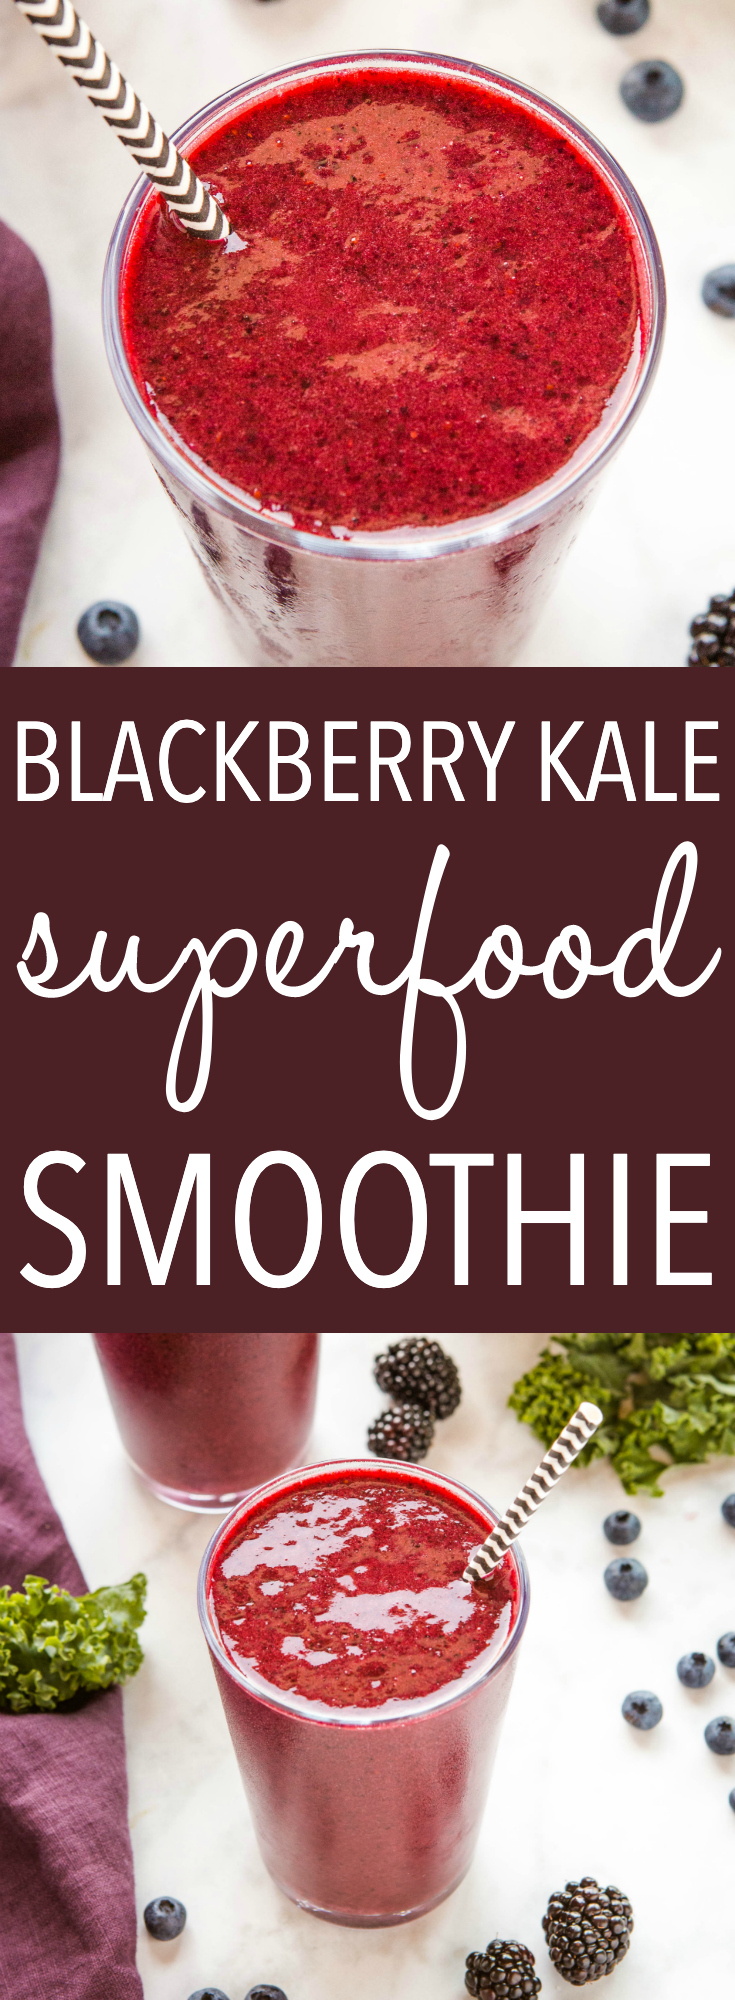 This Blackberry Kale Superfood Smoothie is the perfect healthy smoothie for breakfast or a post-workout snack! It's packed with kale and juicy blackberries, and it's vegan and dairy-free! Recipe from thebusybaker.ca! #recipe #smoothie #healthy #lowcarb #lowfat #health #weightloss #workout #fitness #newyearnewyou via @busybakerblog